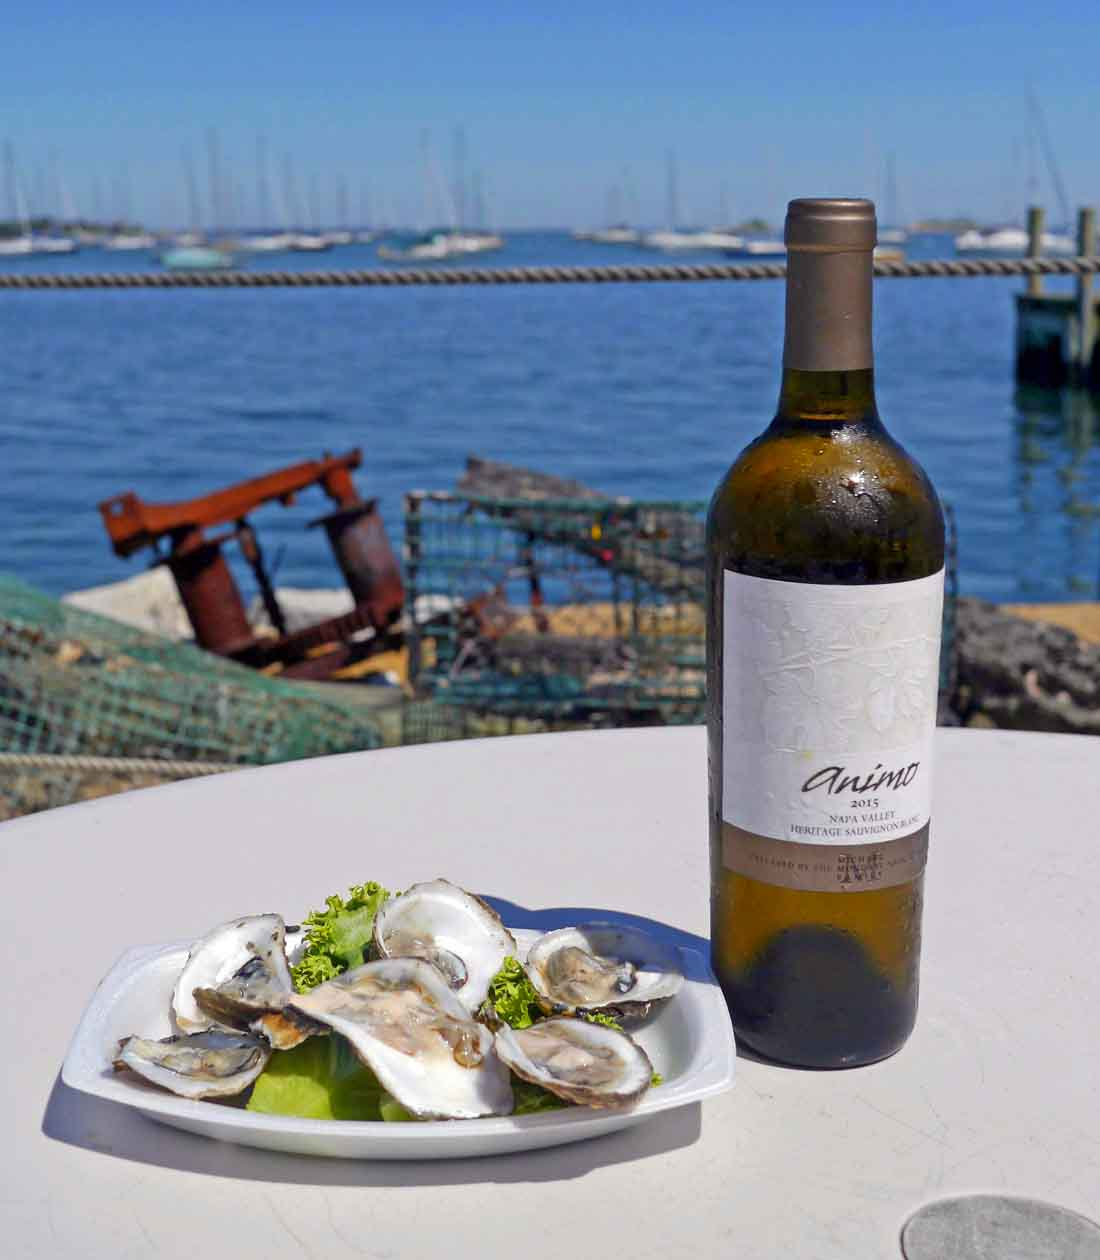 Heritage Sauvignon Blanc with Connecticut bluepoint oysters